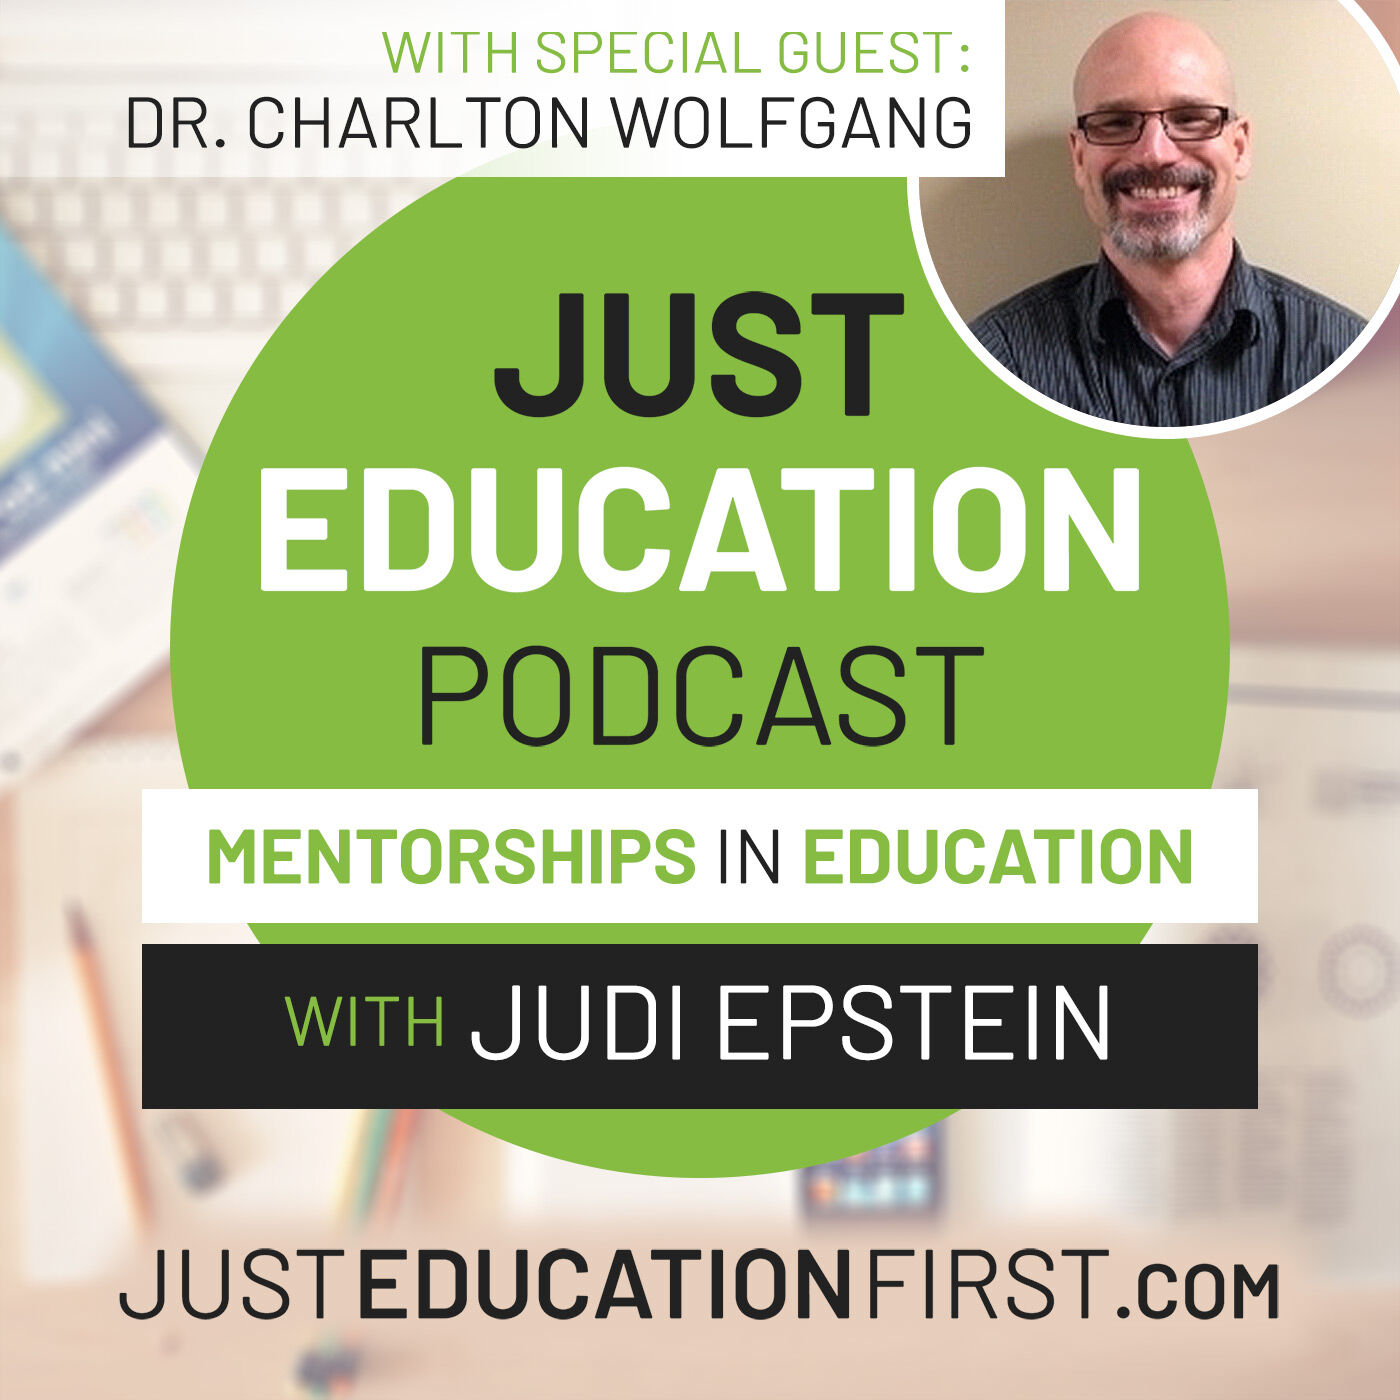 Episode 29 - Dr. Charlton Wolfgang | Not Weird, but Twice Exceptional.